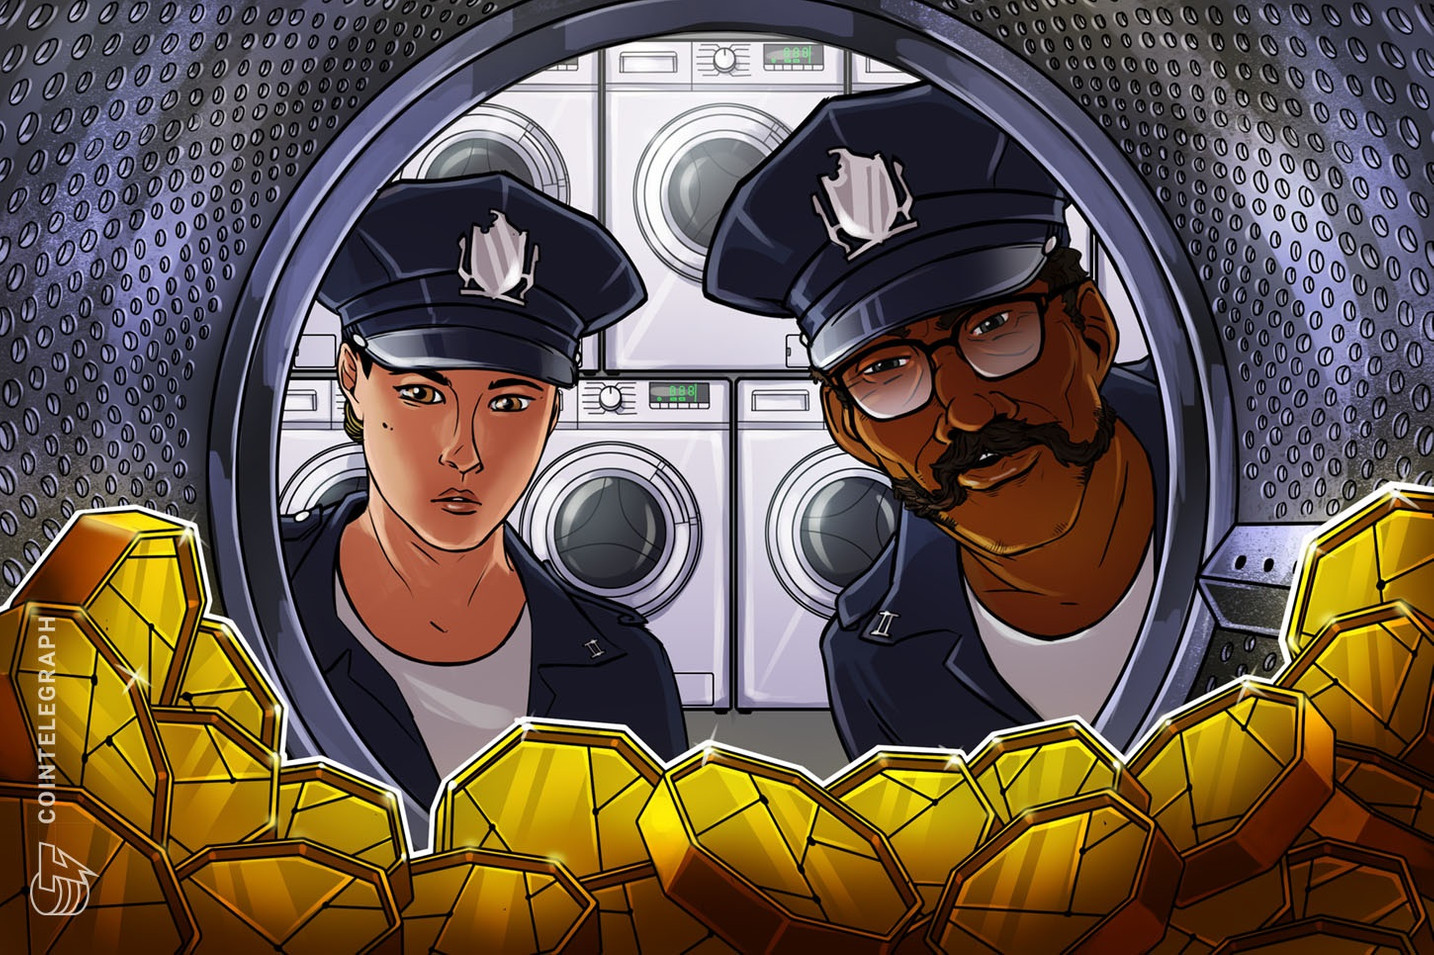 Brazilian Police Arrest Suspect for Money Laundering With Bitcoin